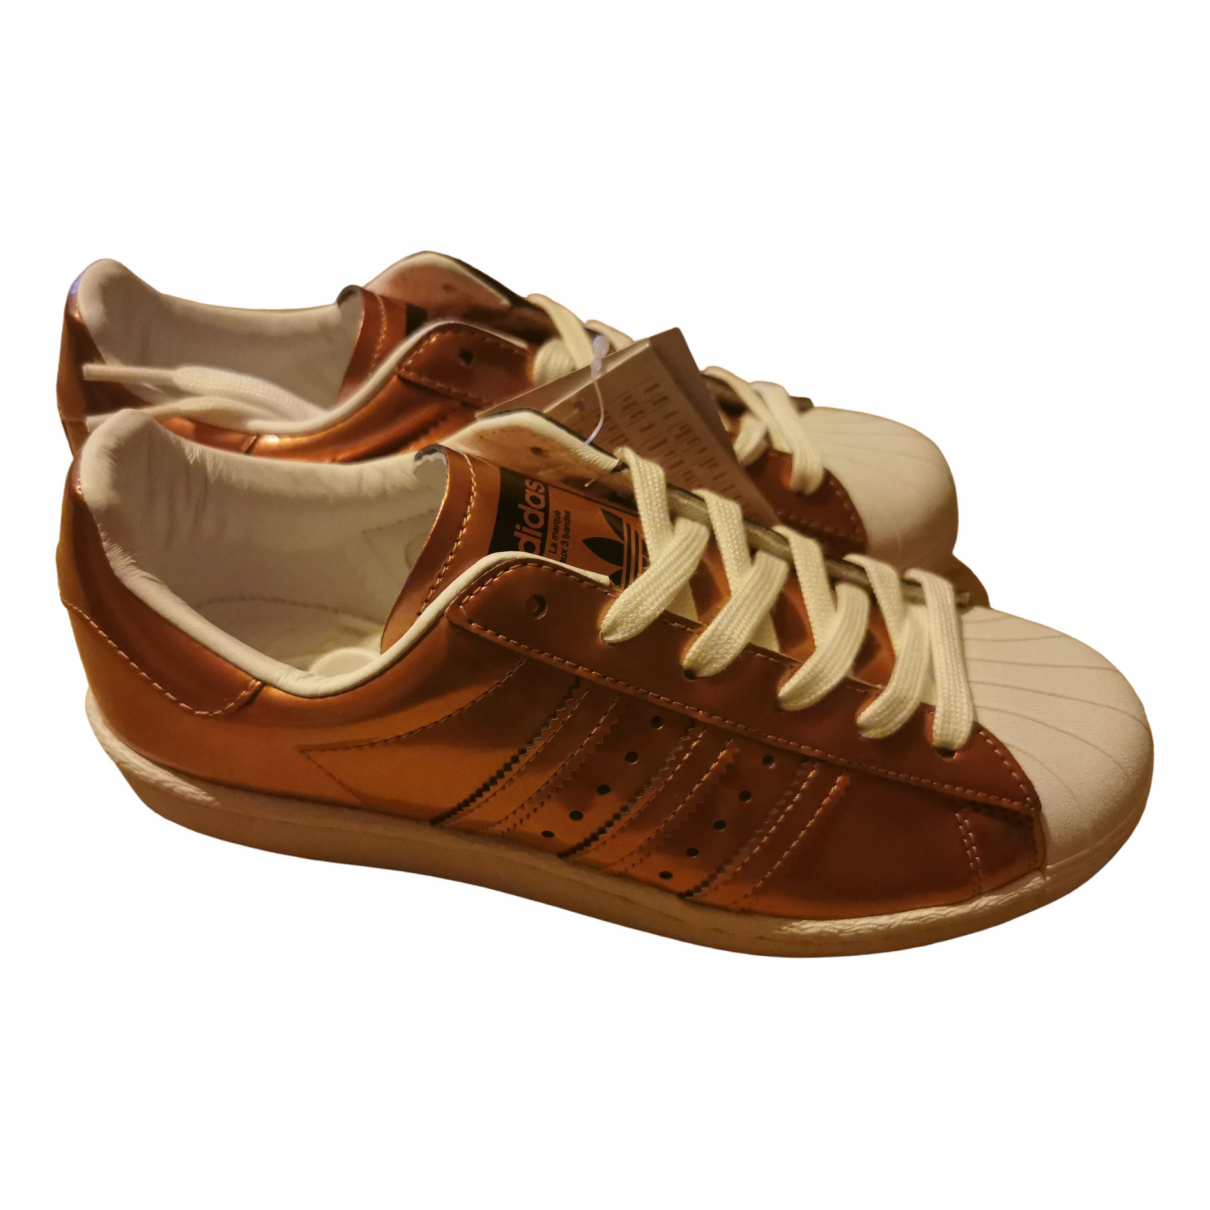 Adidas Superstar Metallic Leather Trainers for Women 38 EU